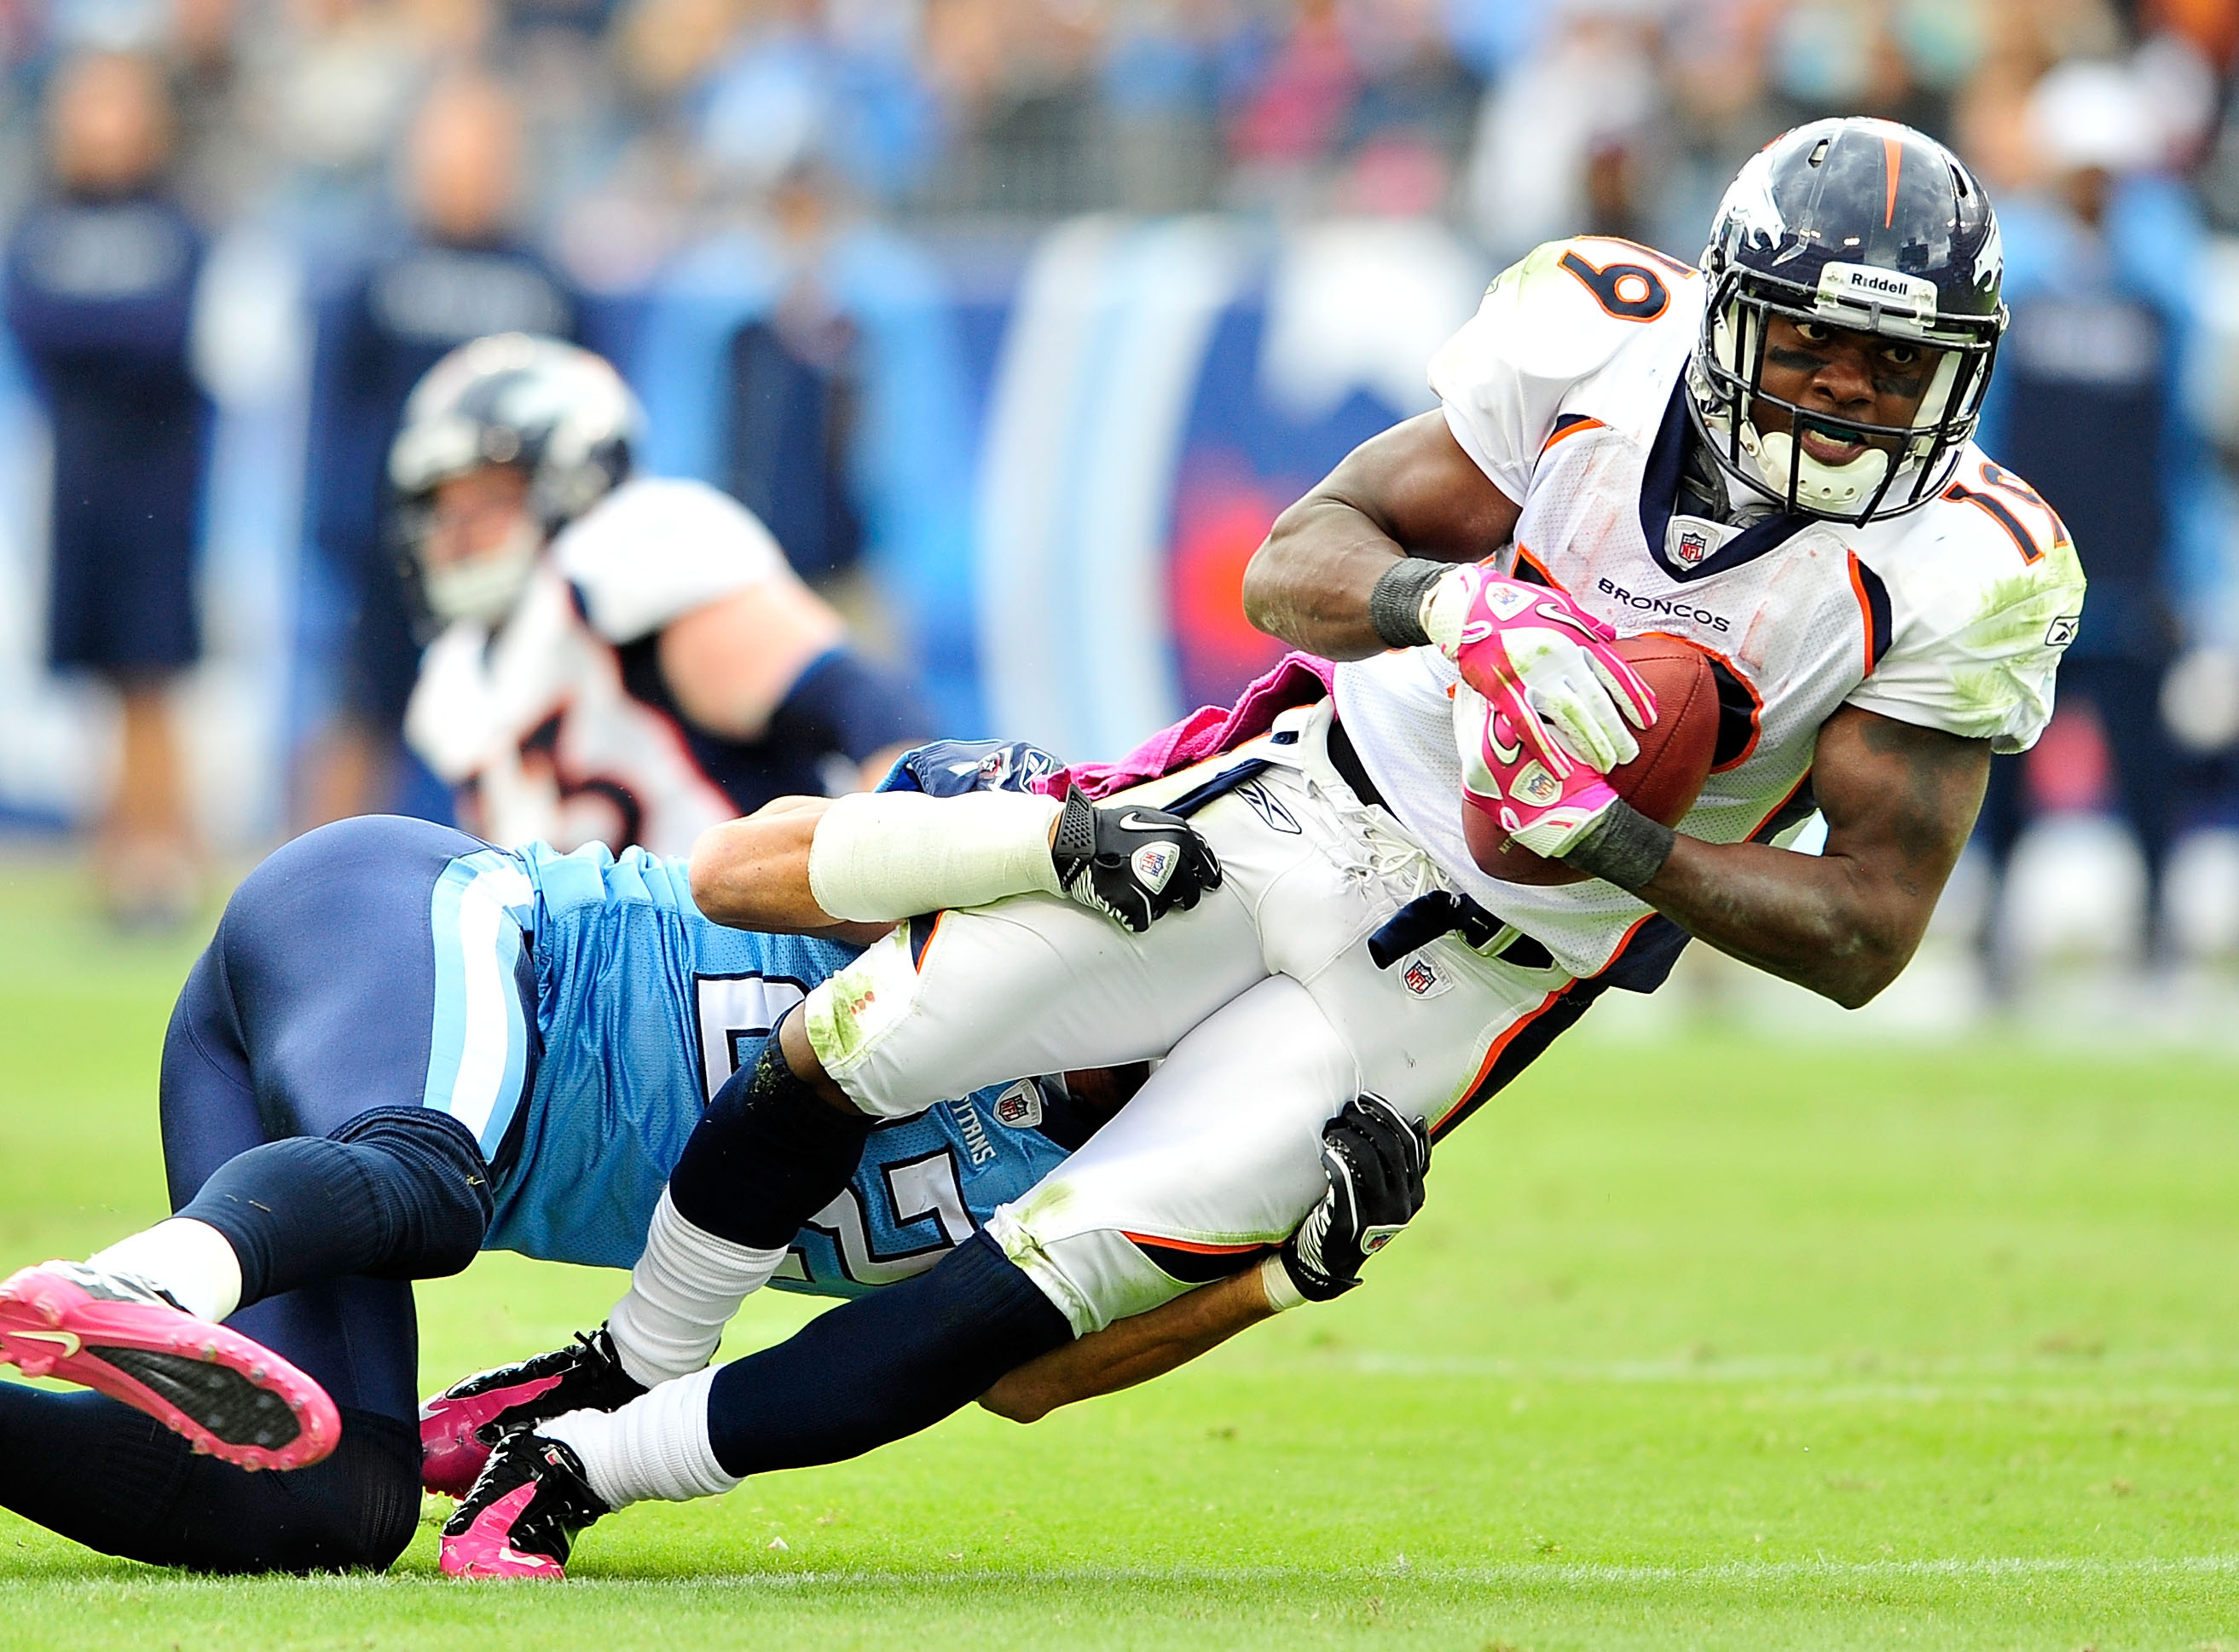 NASHVILLE, TN - OCTOBER 03:  Vincent Fuller #22 of the Tennessee Titans tackles Eddie Royal #19 of the Denver Broncos during the first half at LP Field on October 3, 2010 in Nashville, Tennessee.  (Photo by Grant Halverson/Getty Images)